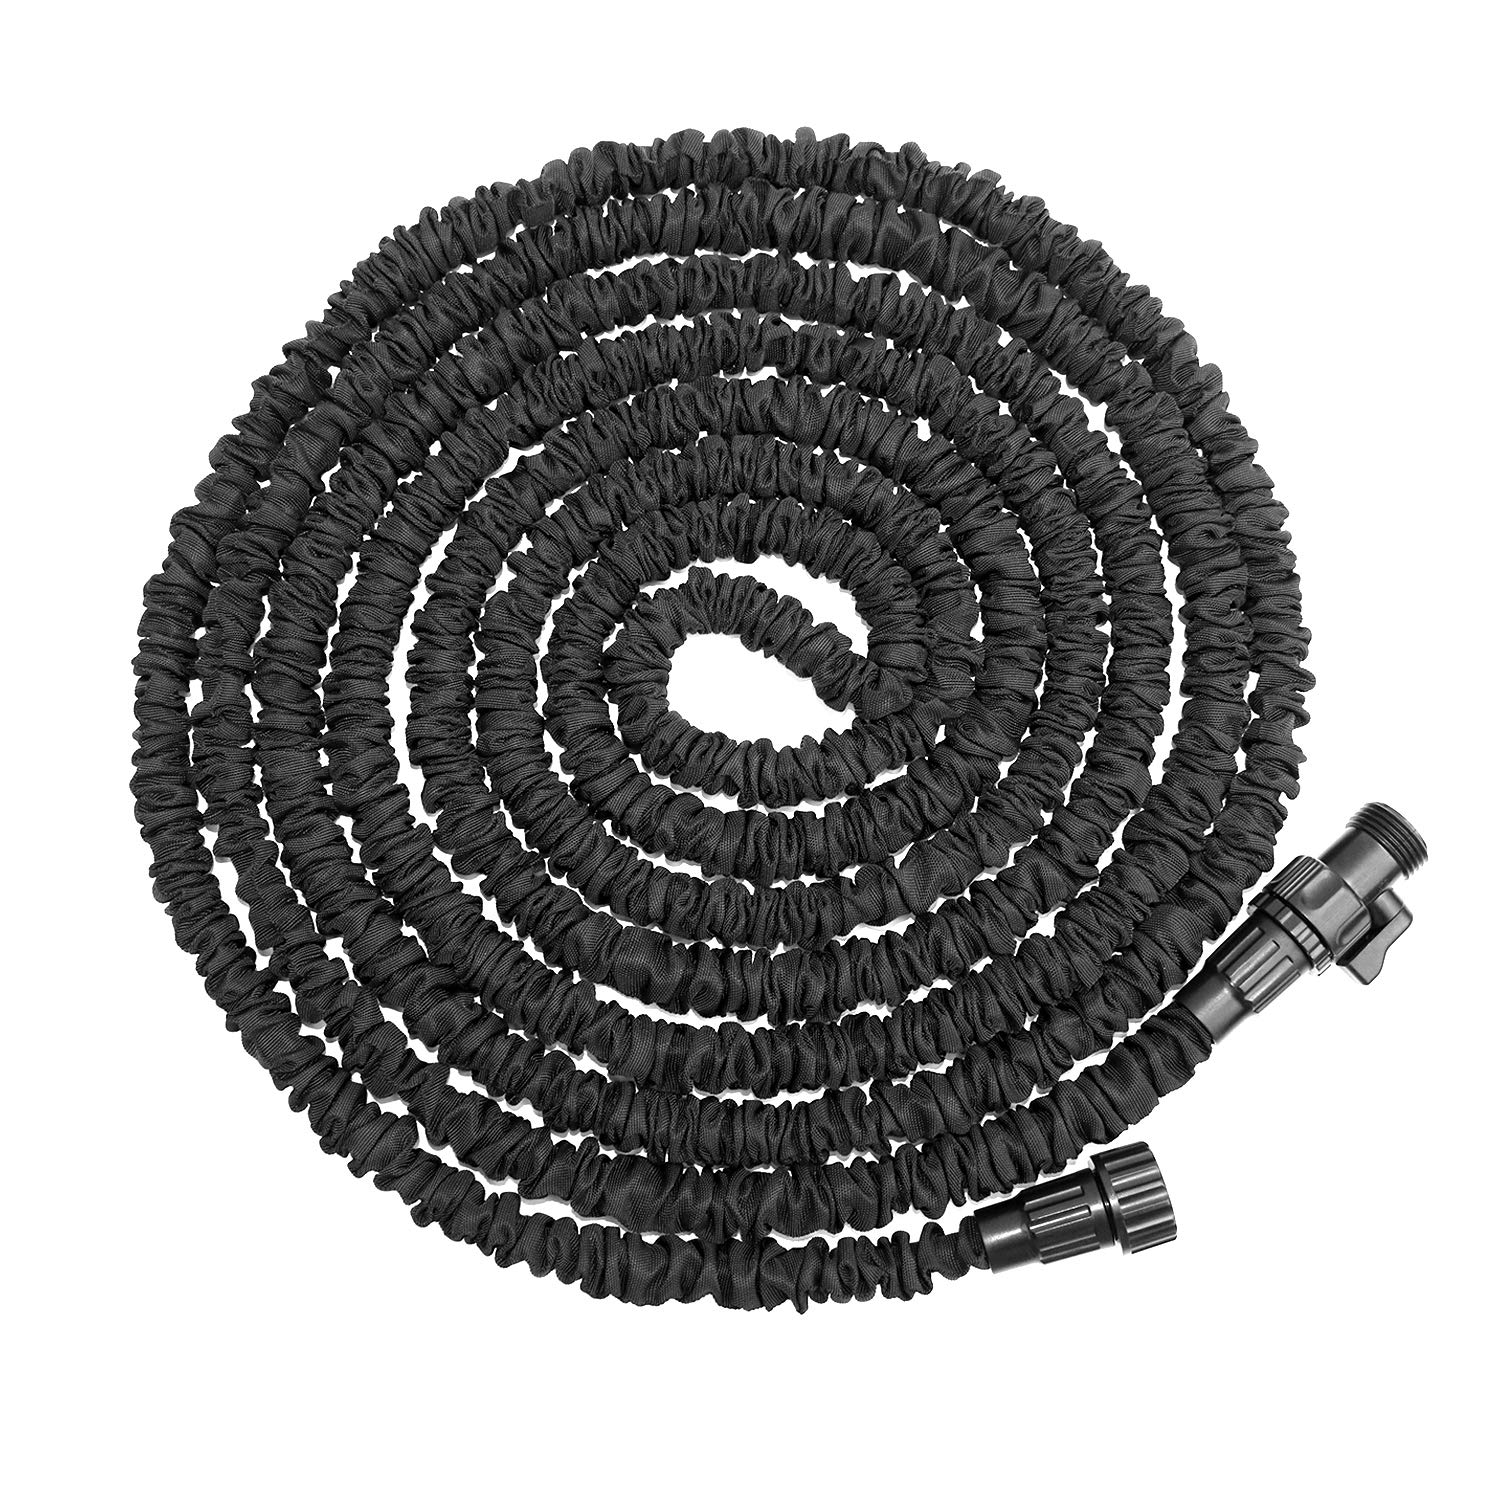 "ATLES Expandable Garden Hose 75 ft, Lightweight & Durable Expanding Water Hose, 3/4"" Solid Fittings and Double Latex Core Flexible Garden Hose for Car Cleaning Lawn Watering (Black)"